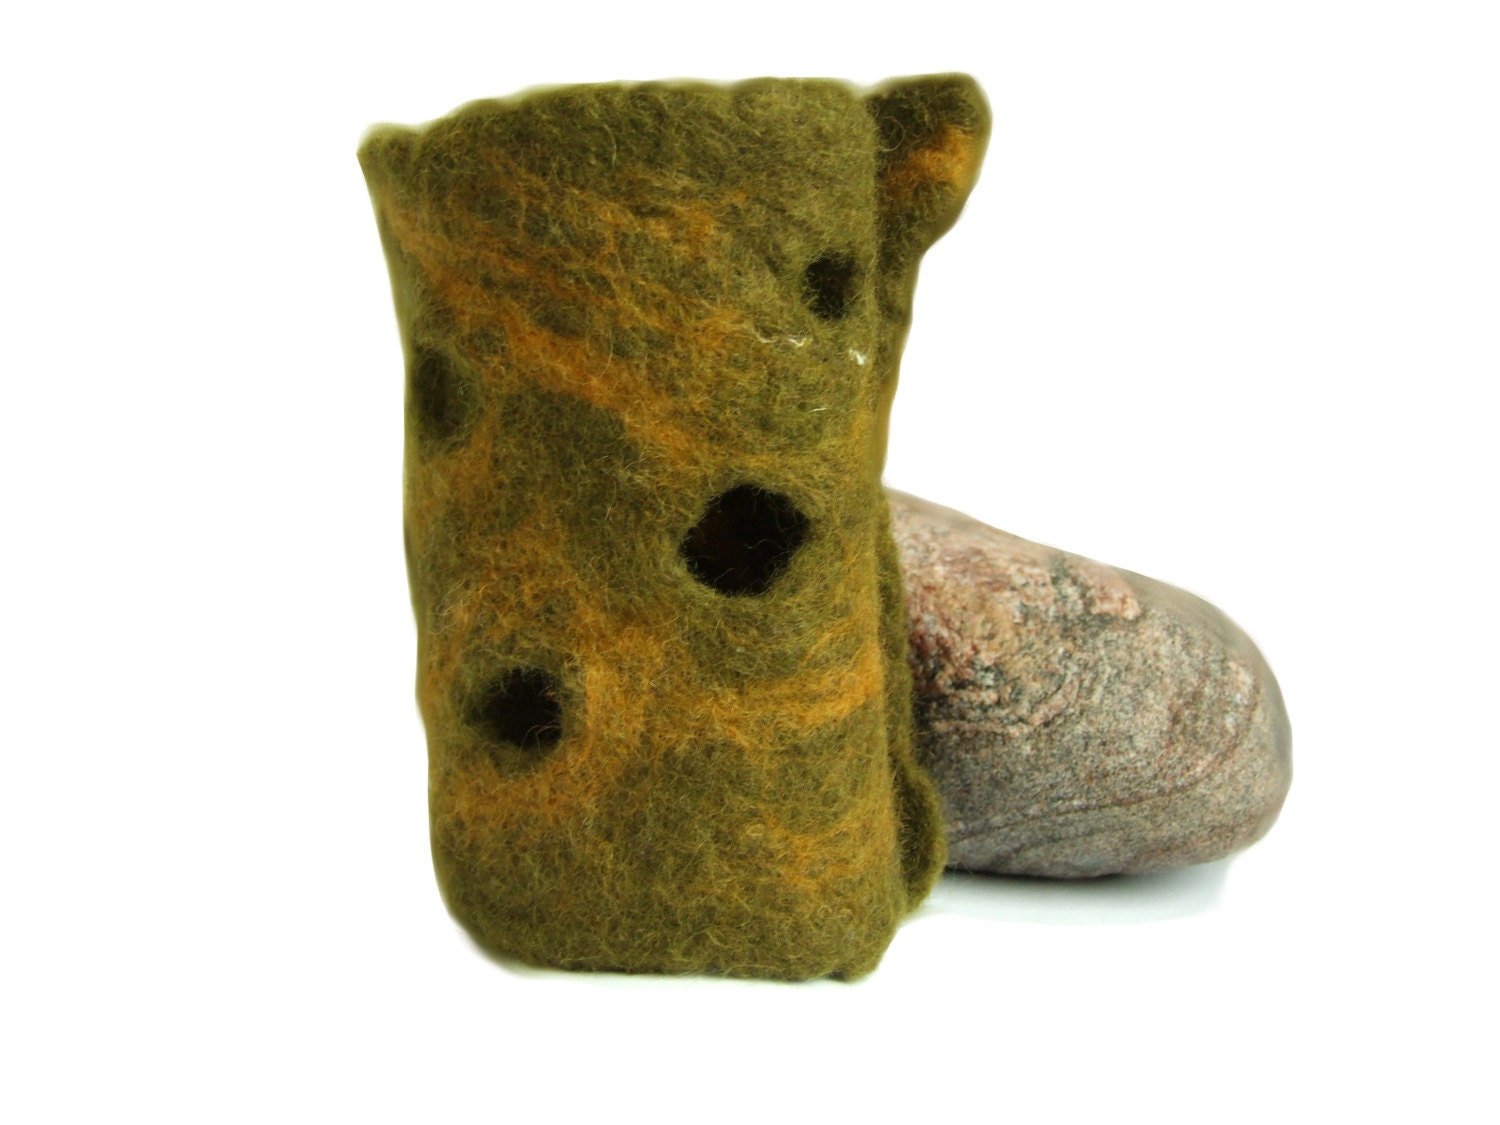 Felt Accessories - Felt Cuff bracelet - Olive Green Cuff- Merino Wool Felt Cuff - Woodland bracelet - Elven Cuff - Cuff with Holes - FeltYourself